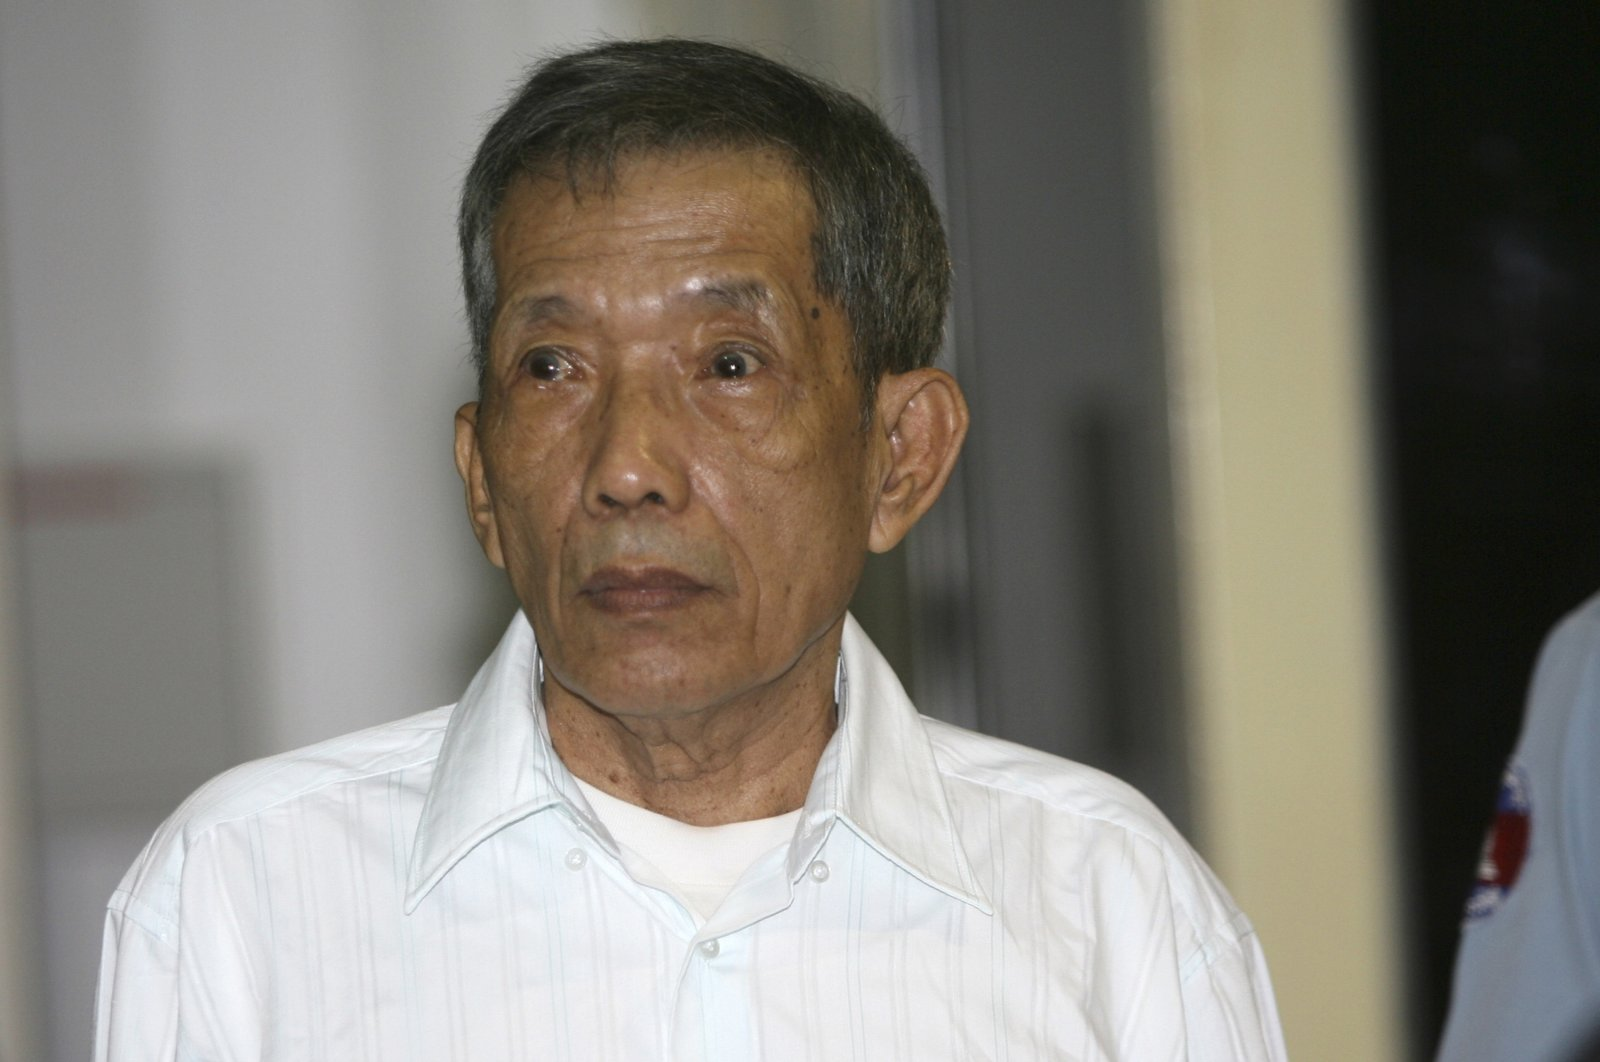 Former Khmer Rouge prison chief Kaing Guek Eav, also know as Duch, looks on during the first day of a U.N.-backed tribunal, Phnom Penh, March 20, 2020. (AP Photo)